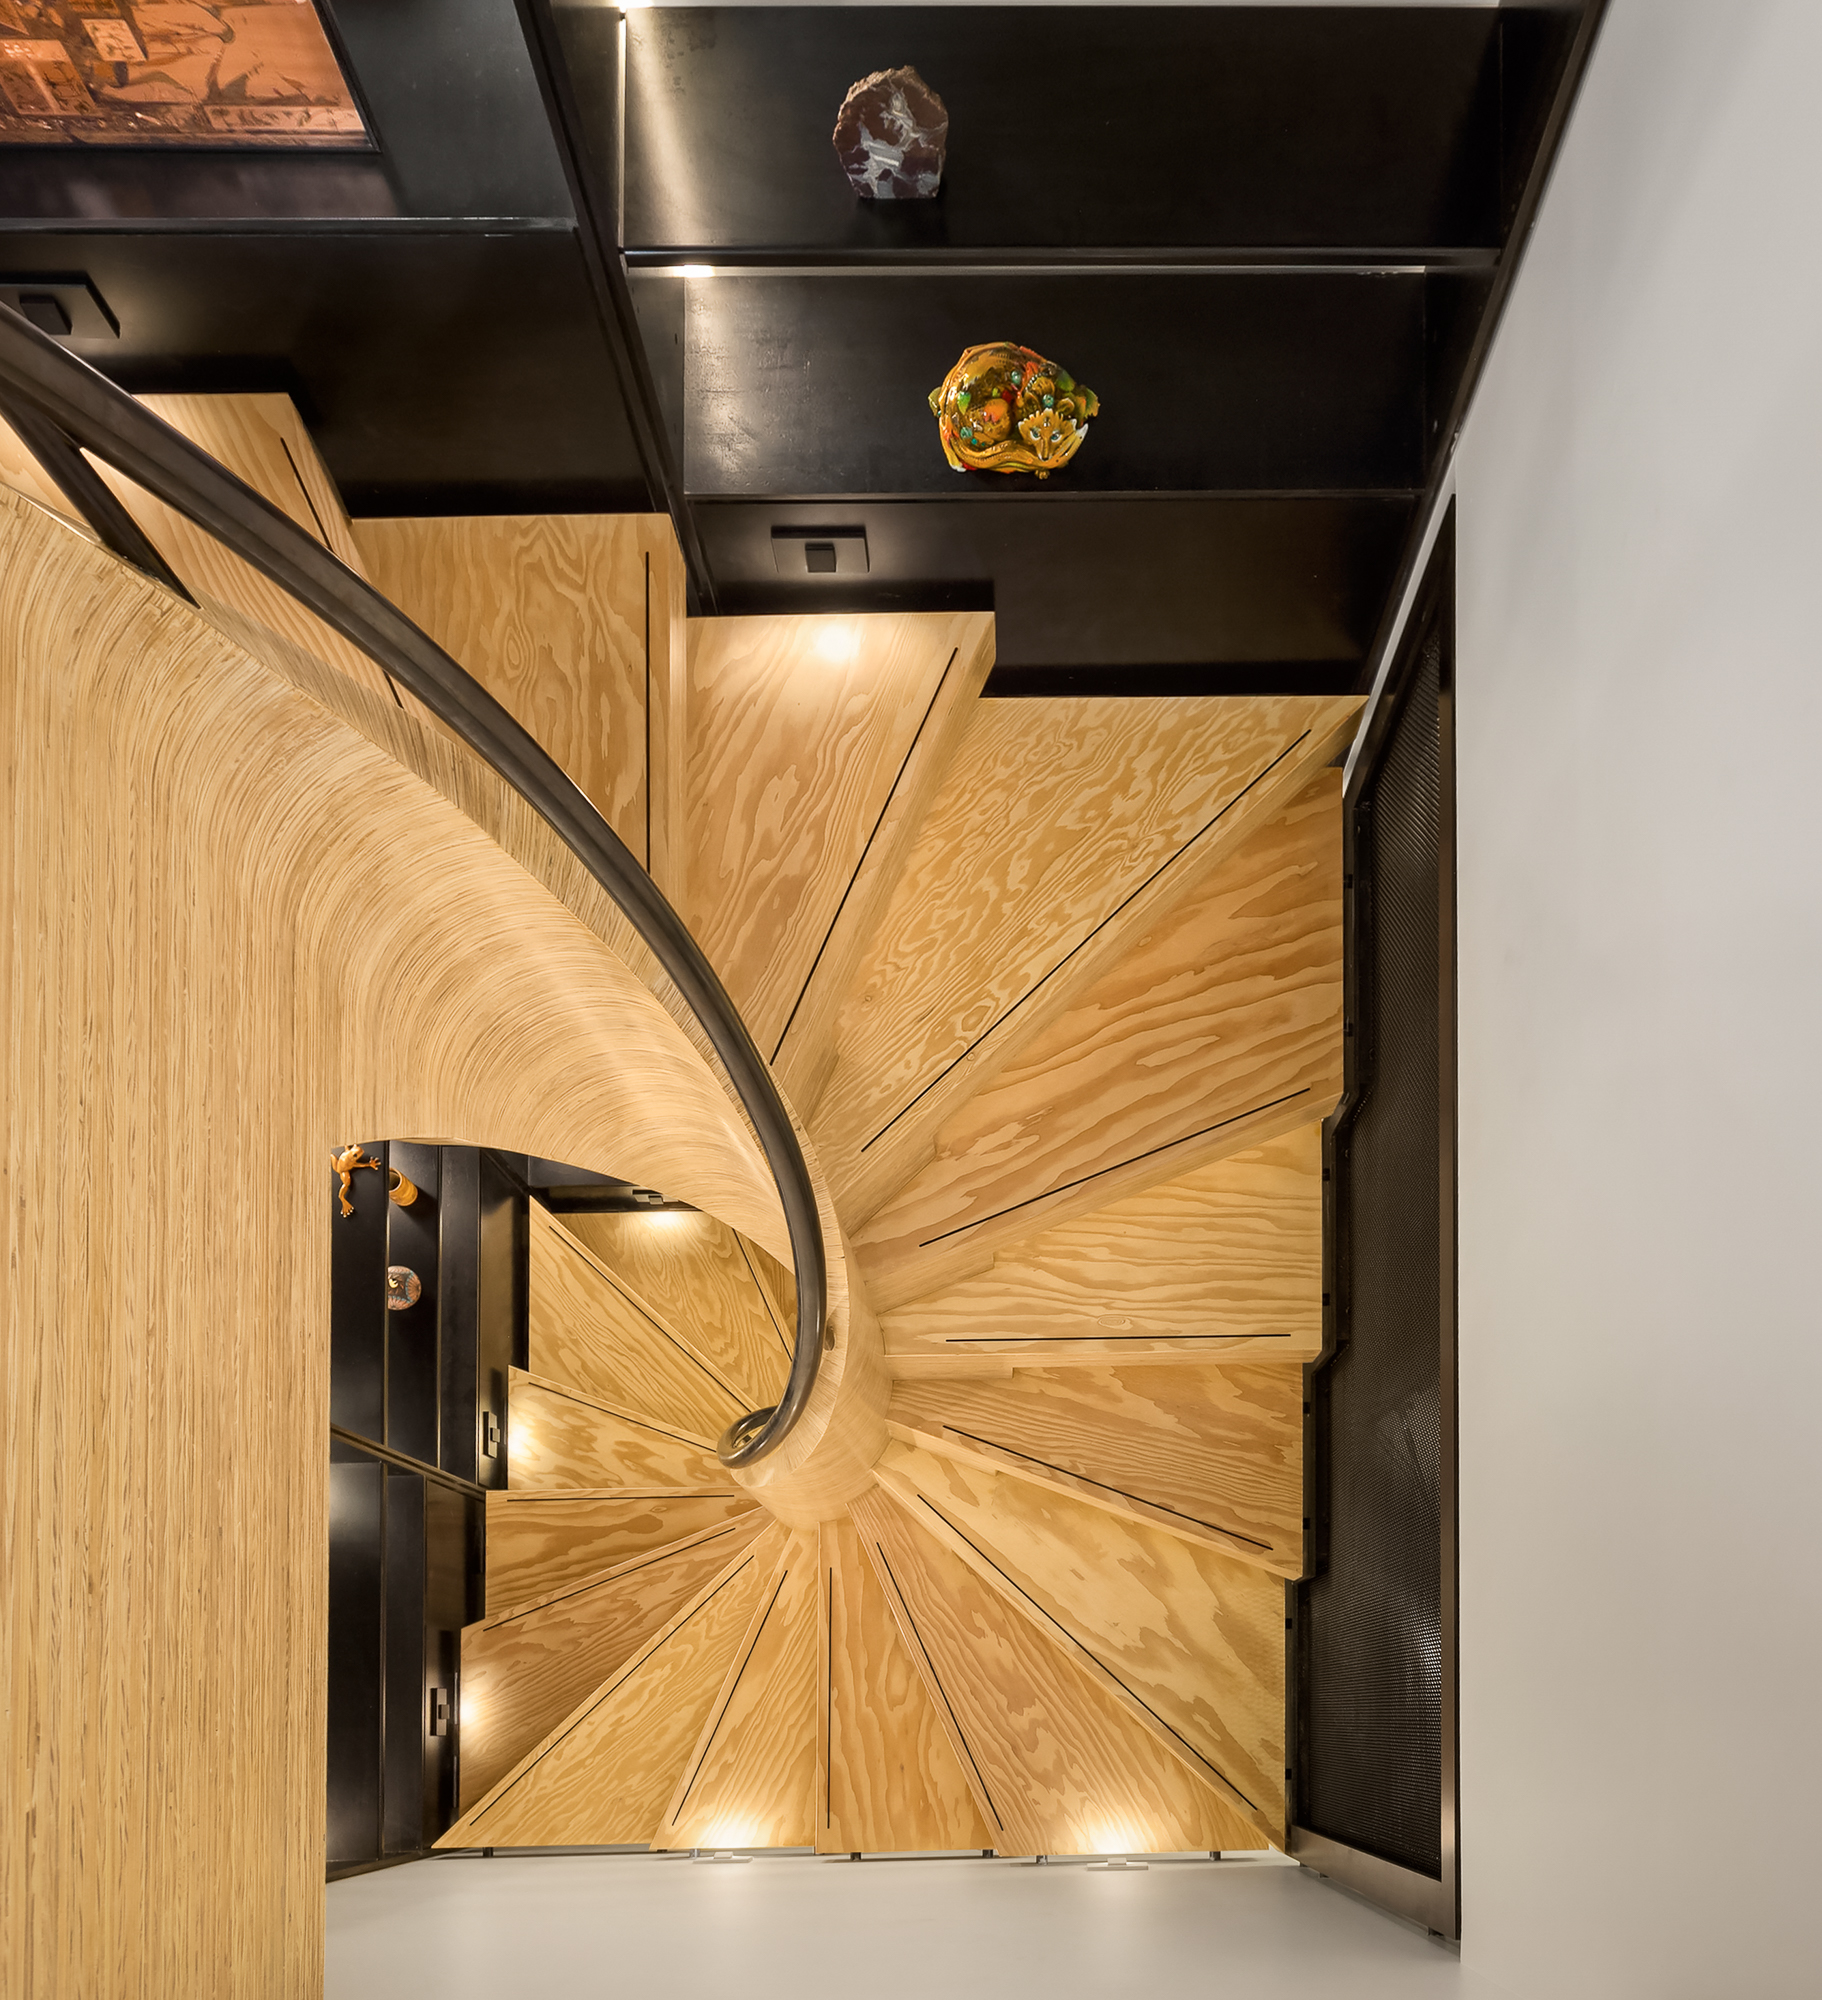 mw design workshop spiral staircase MPP plywood CNC